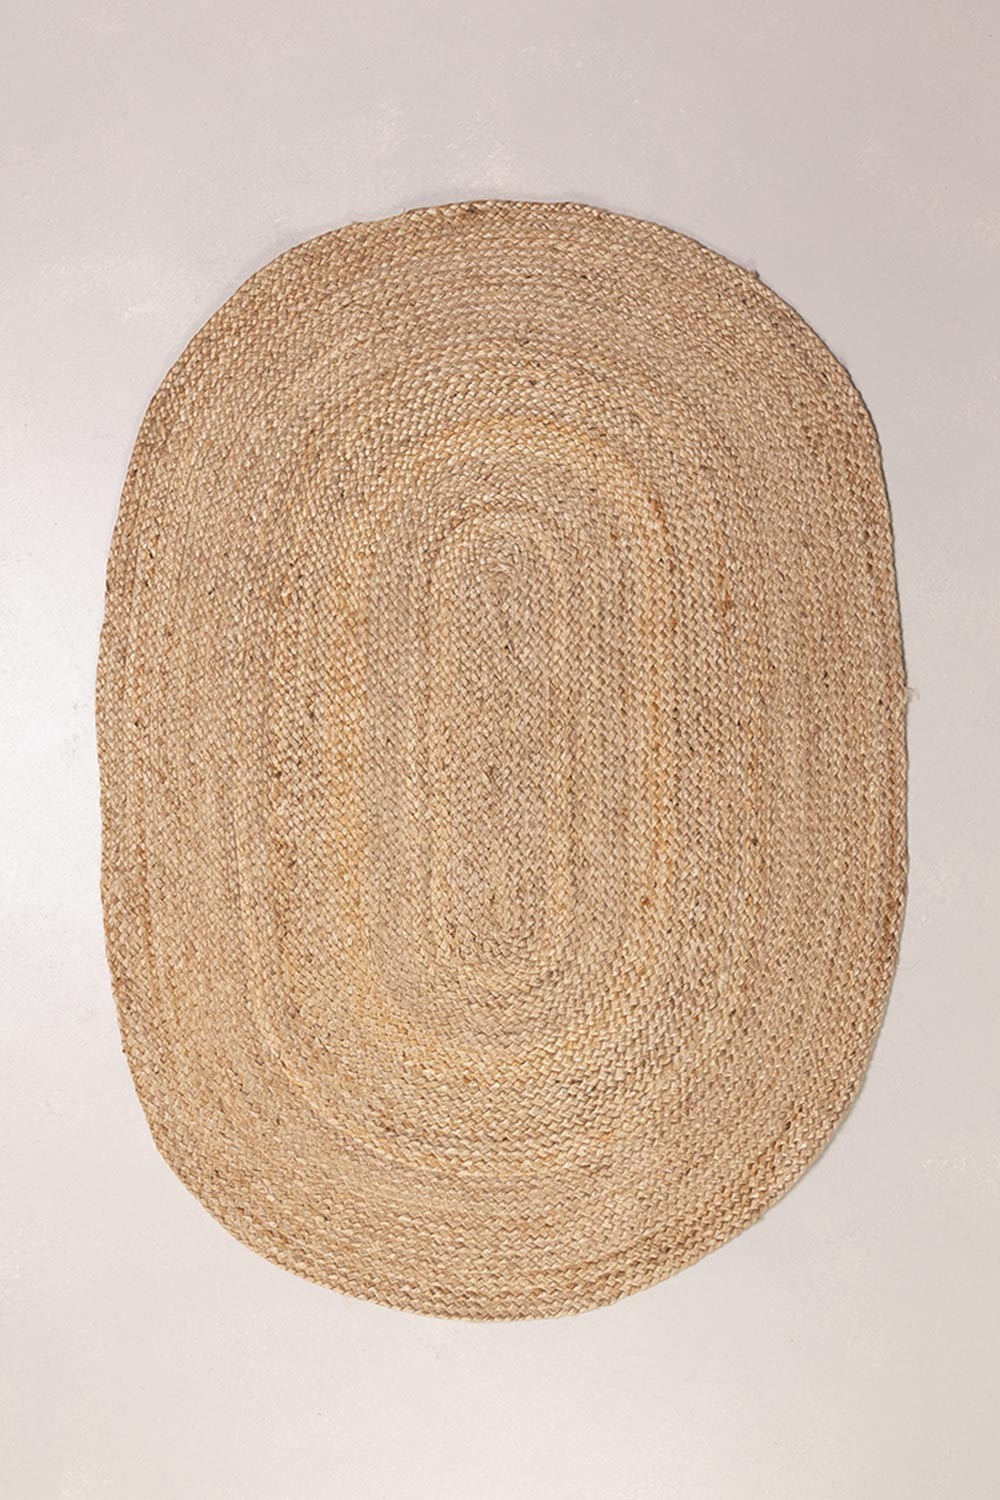 Oval Natural Jute Rug (140x100 cm) Tempo, gallery image 1